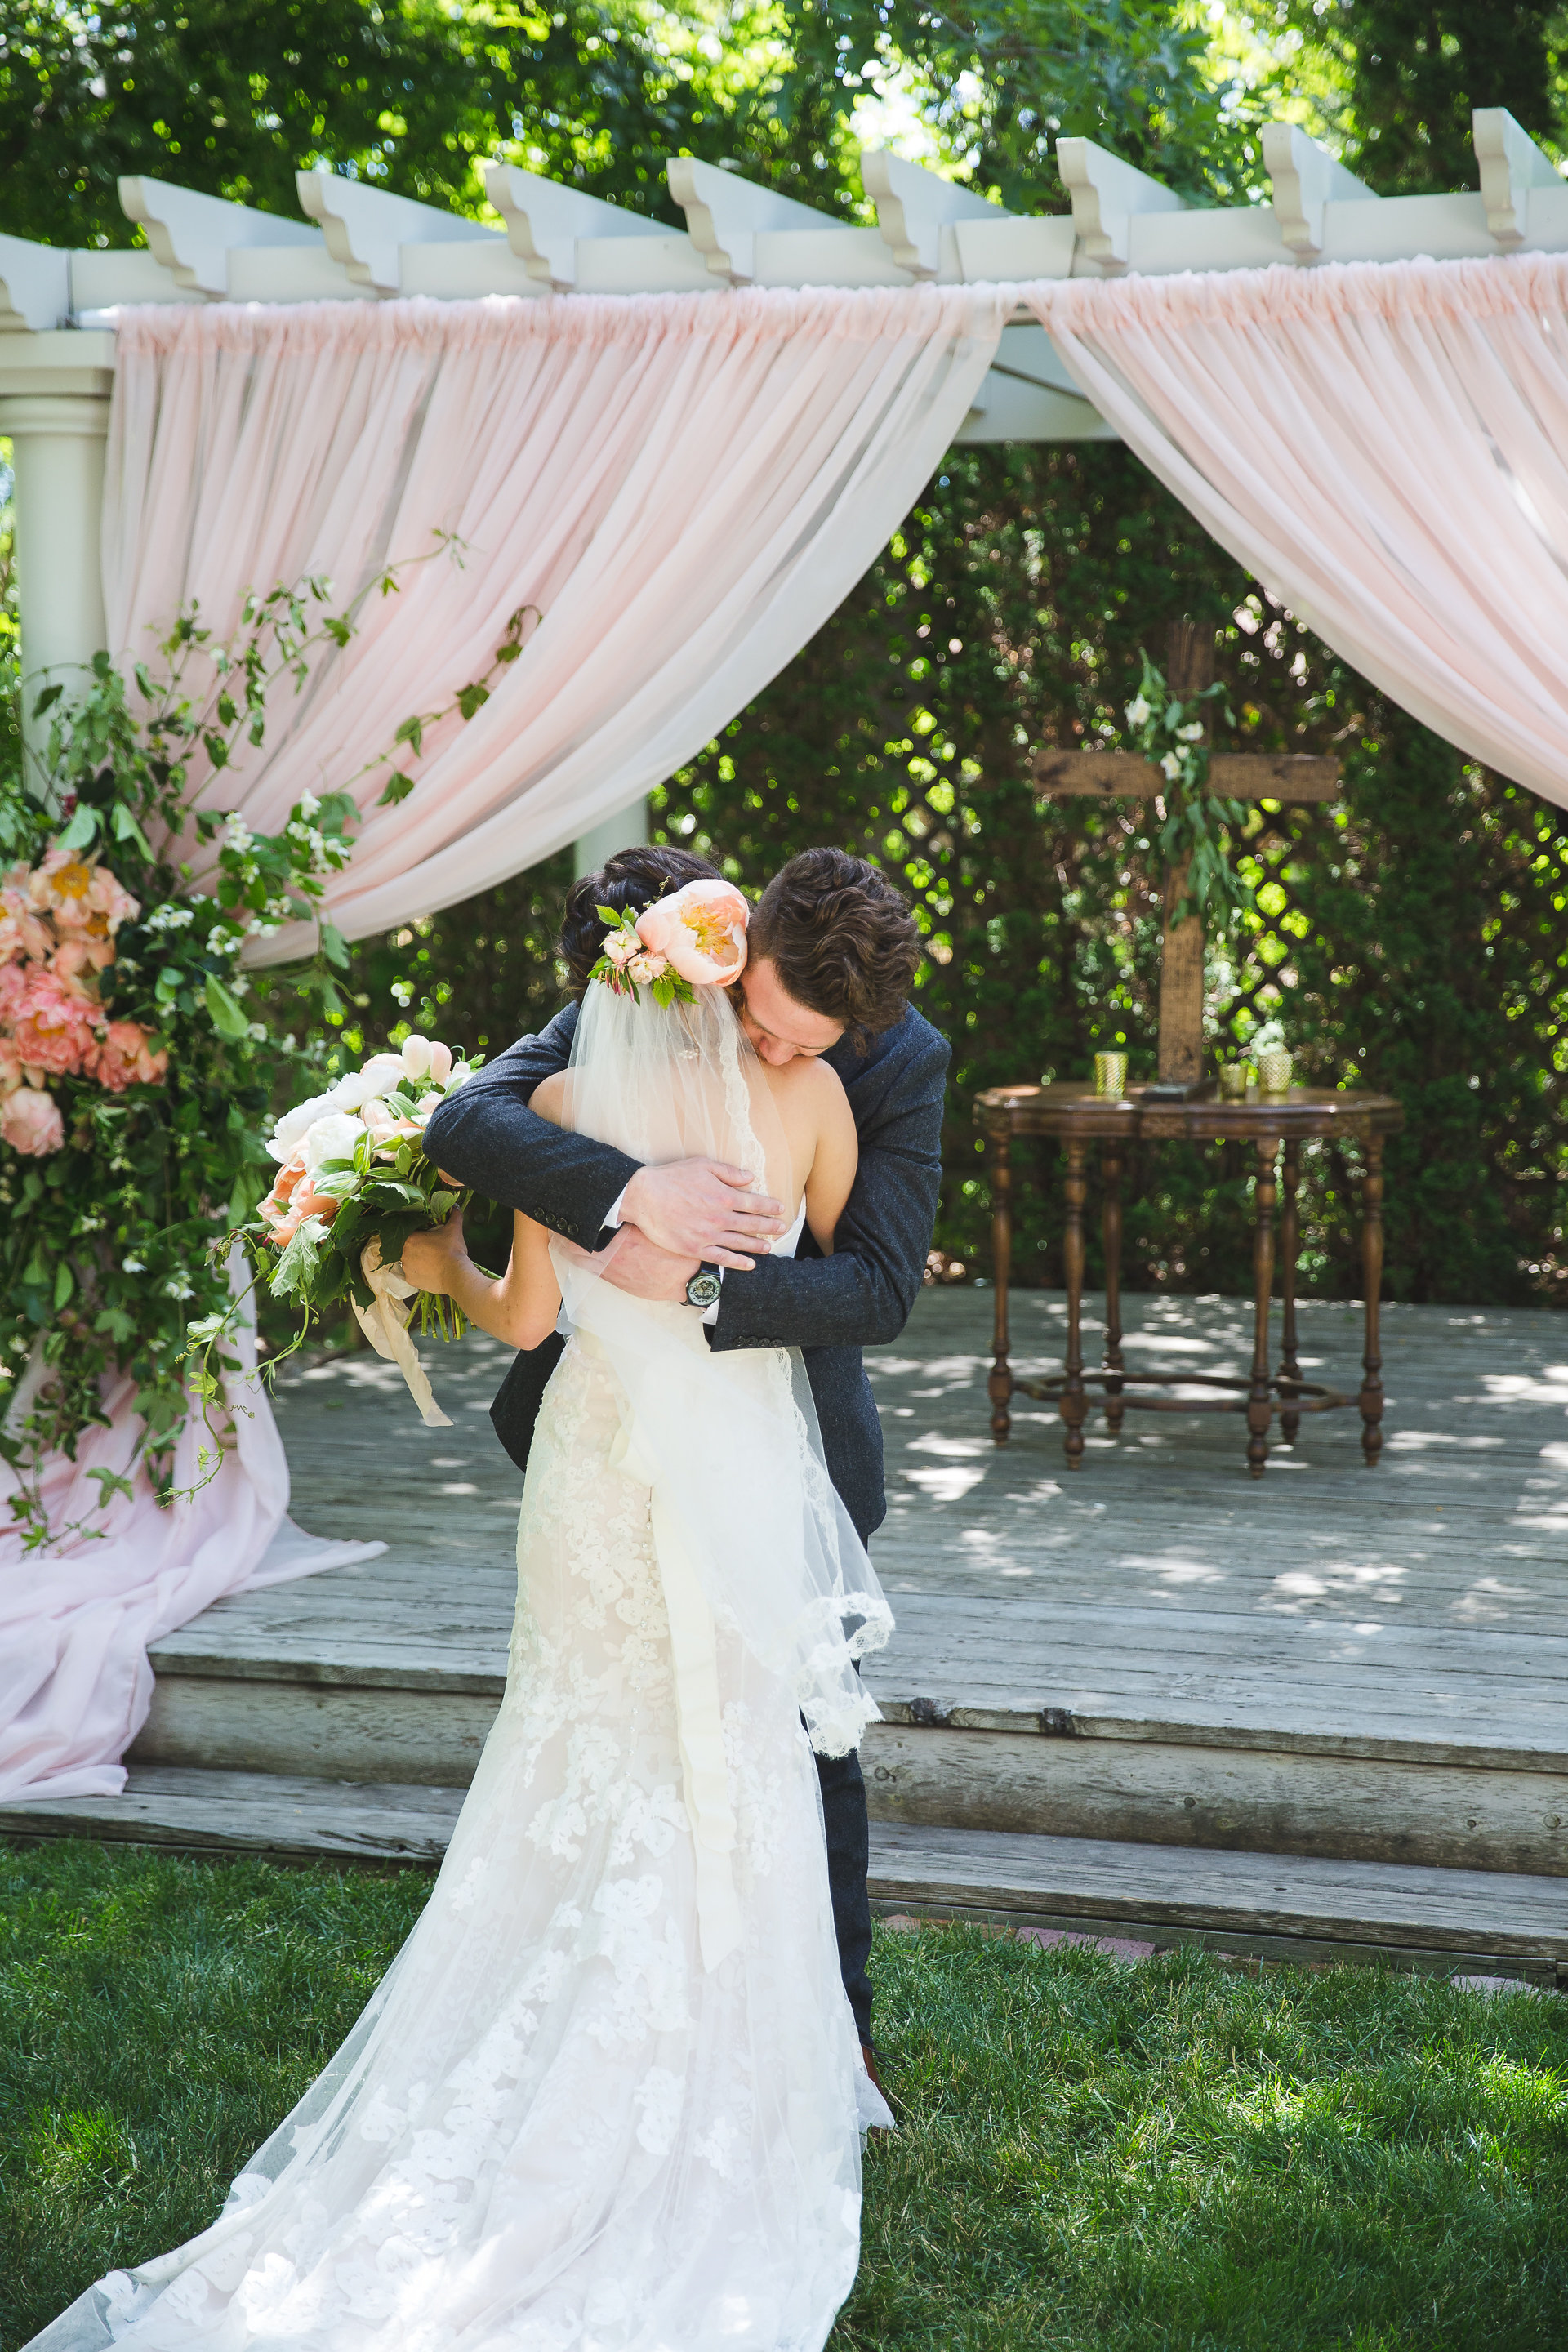 Ira and Lucy Wedding Coordination and Design, Let It Shine Photography